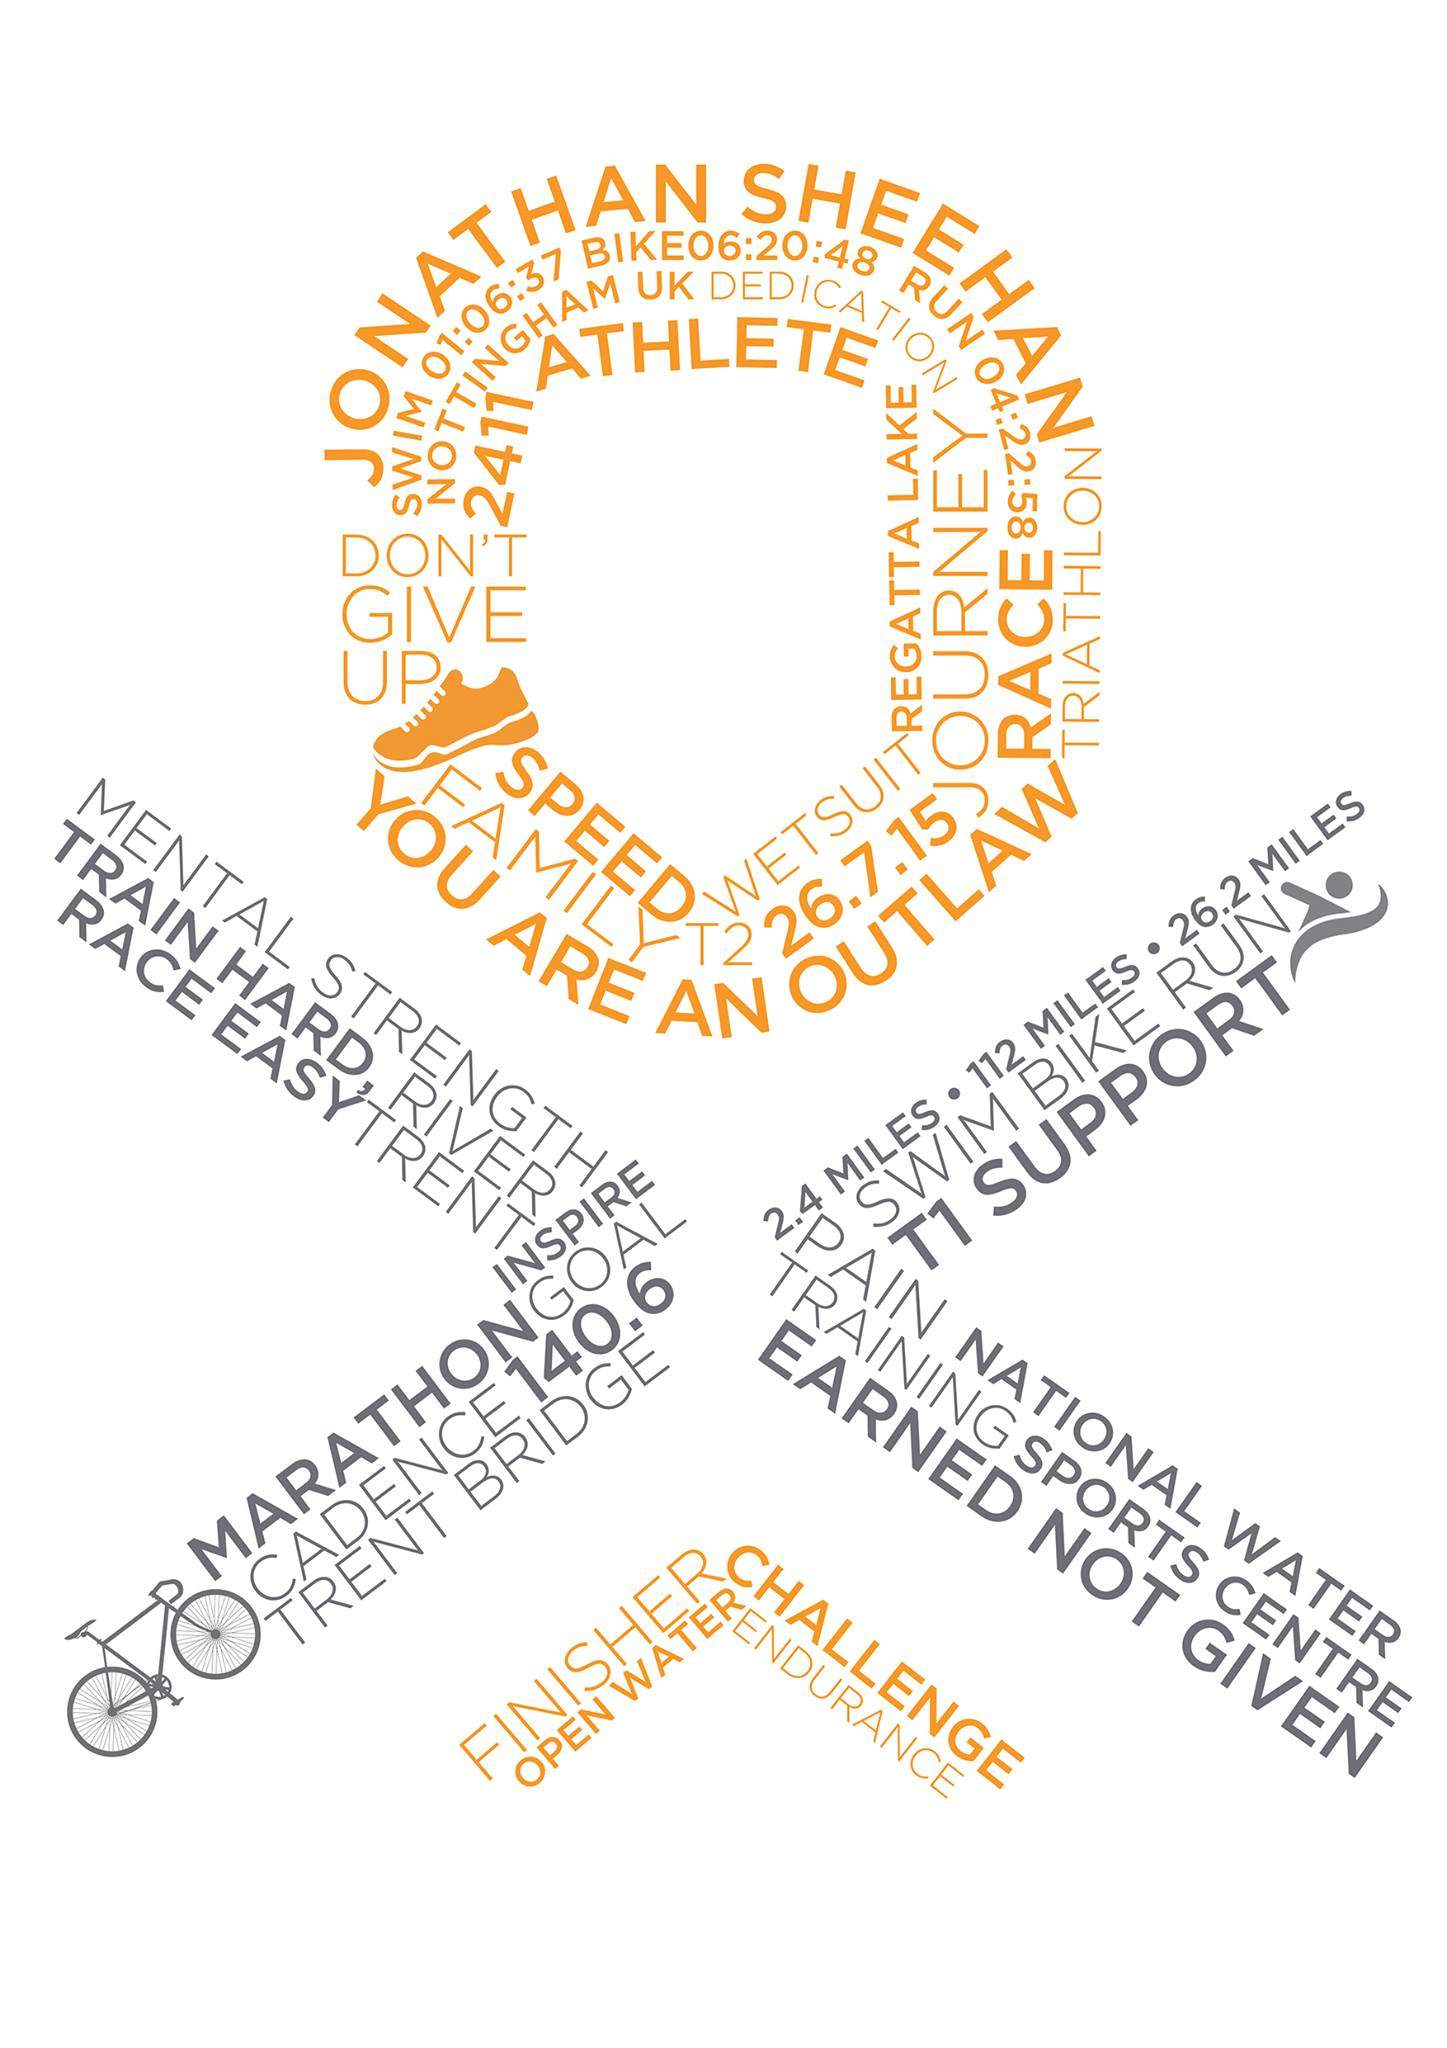 OOutlaw Triathlon (IronMan) Personalised Typographic Posters by Andrianna Curtis